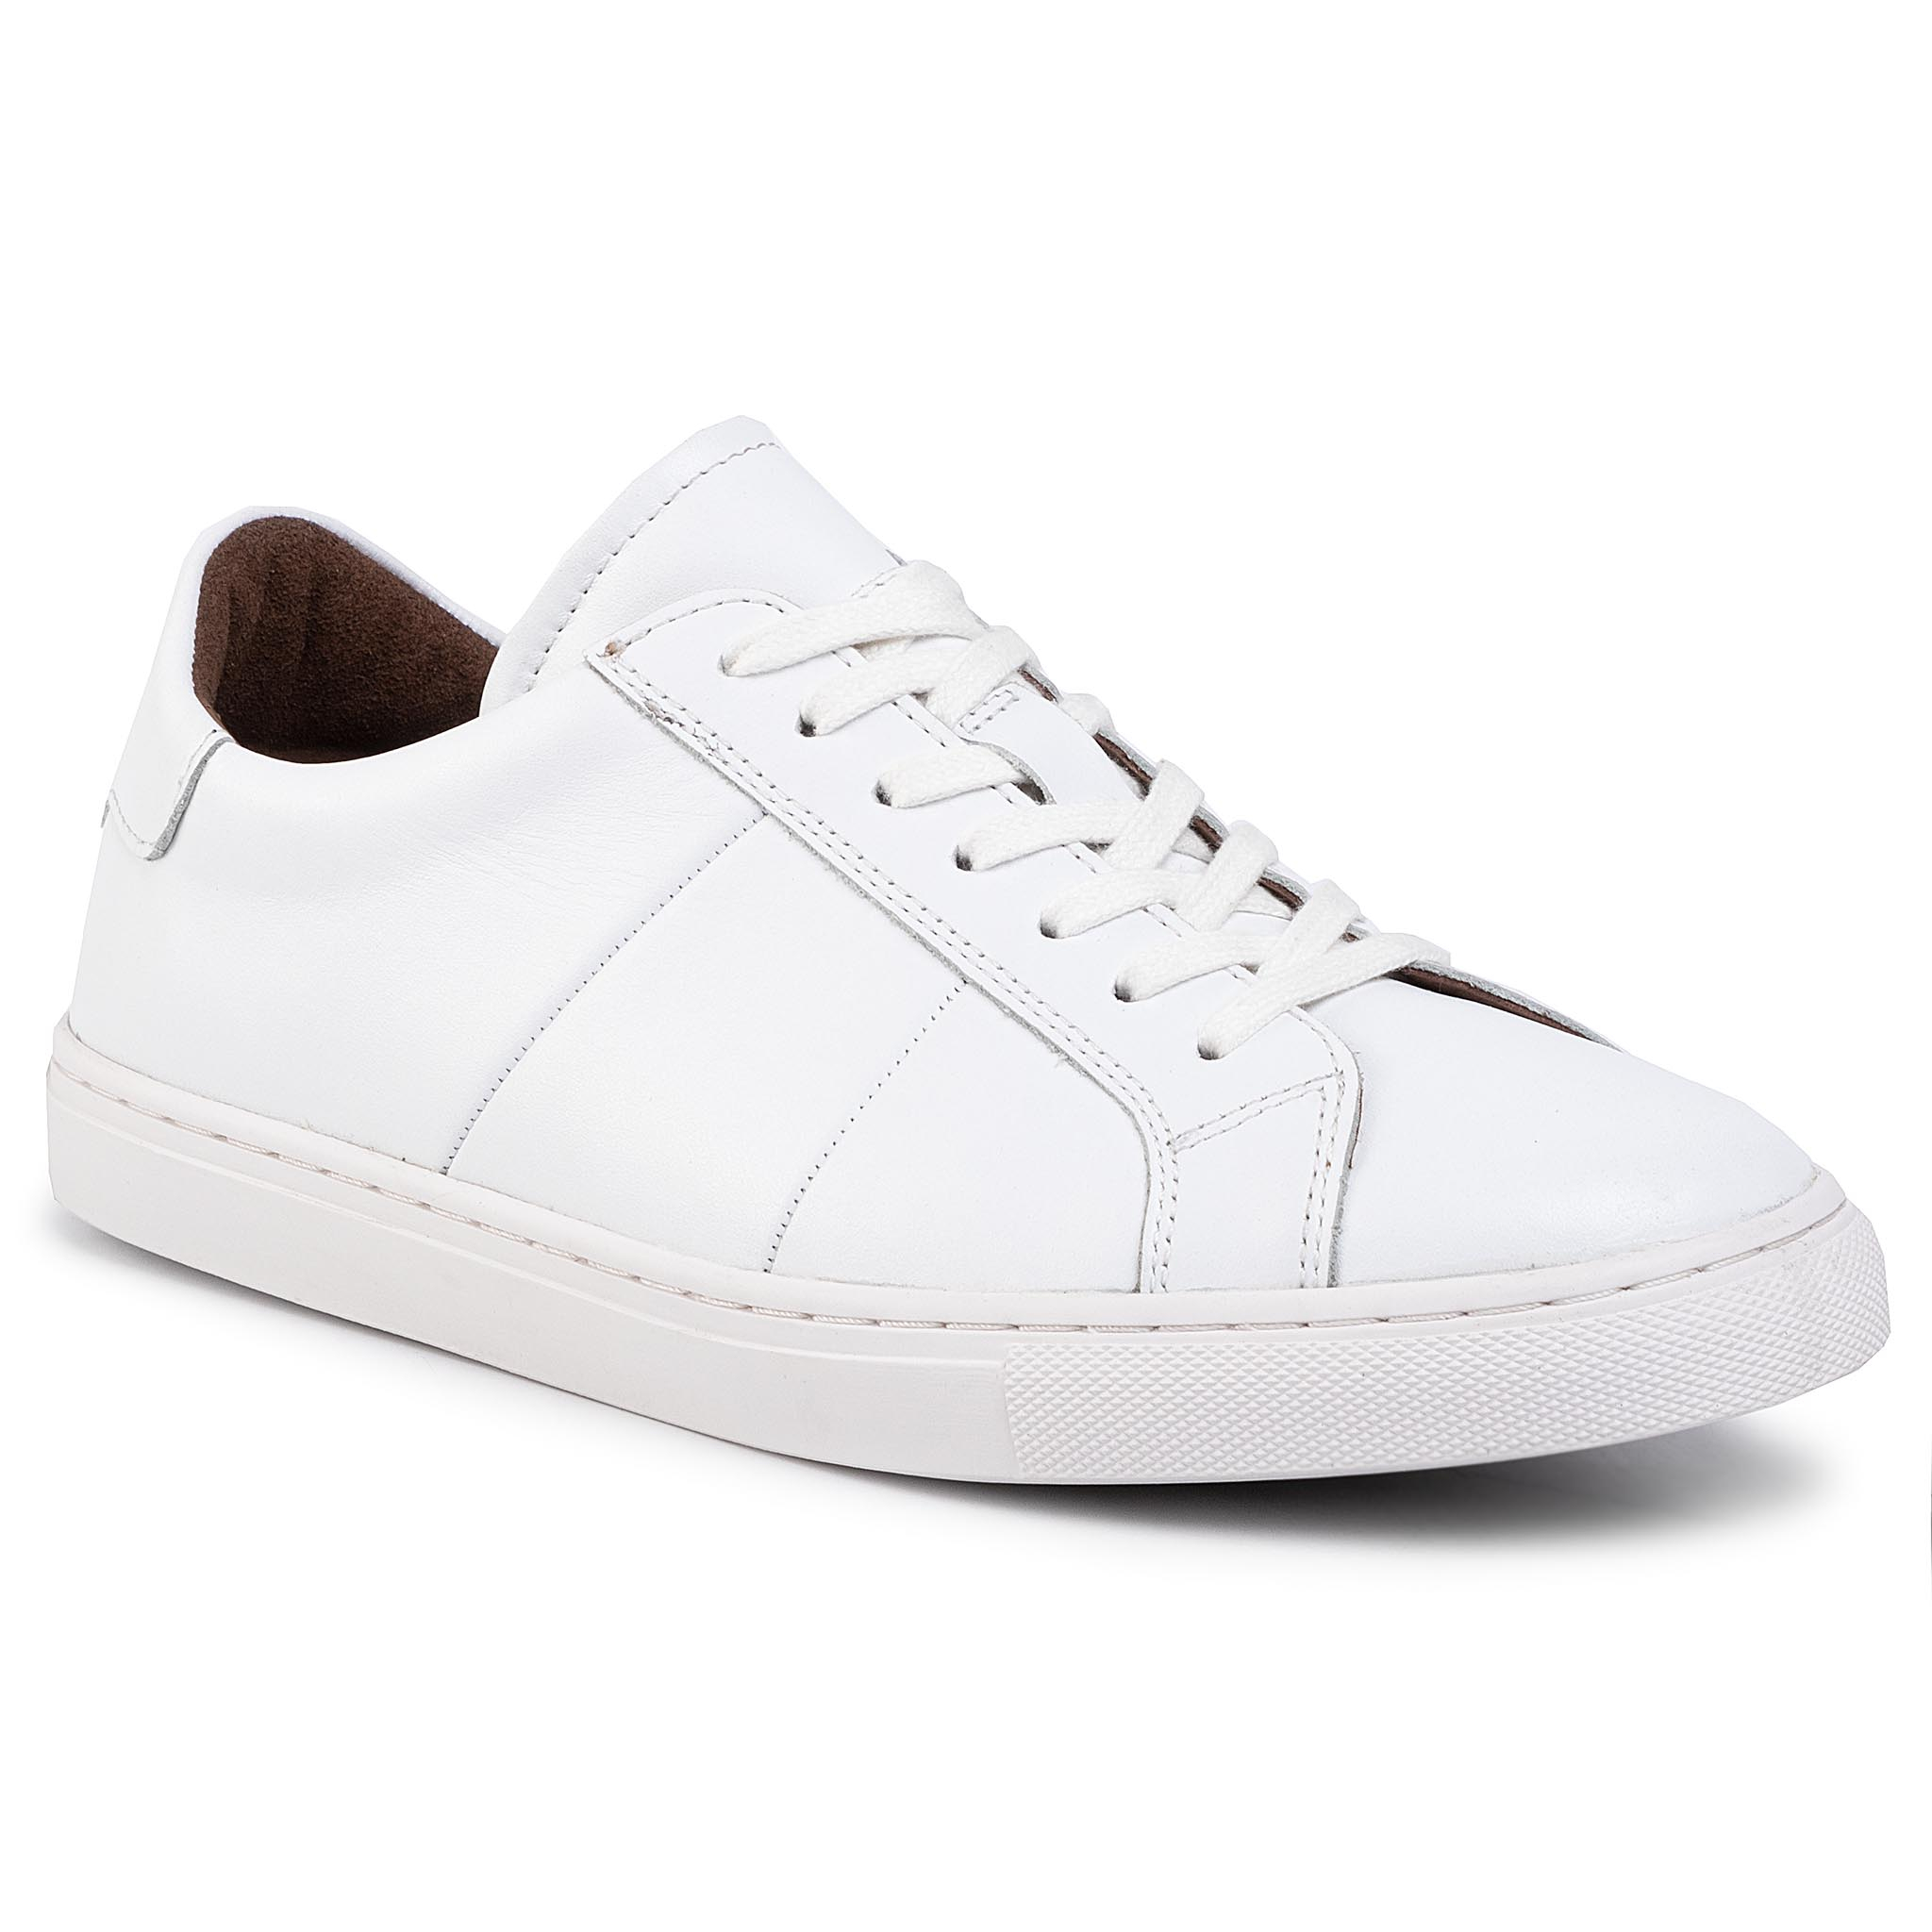 Sneakers DIGEL - Slade 1299728 80